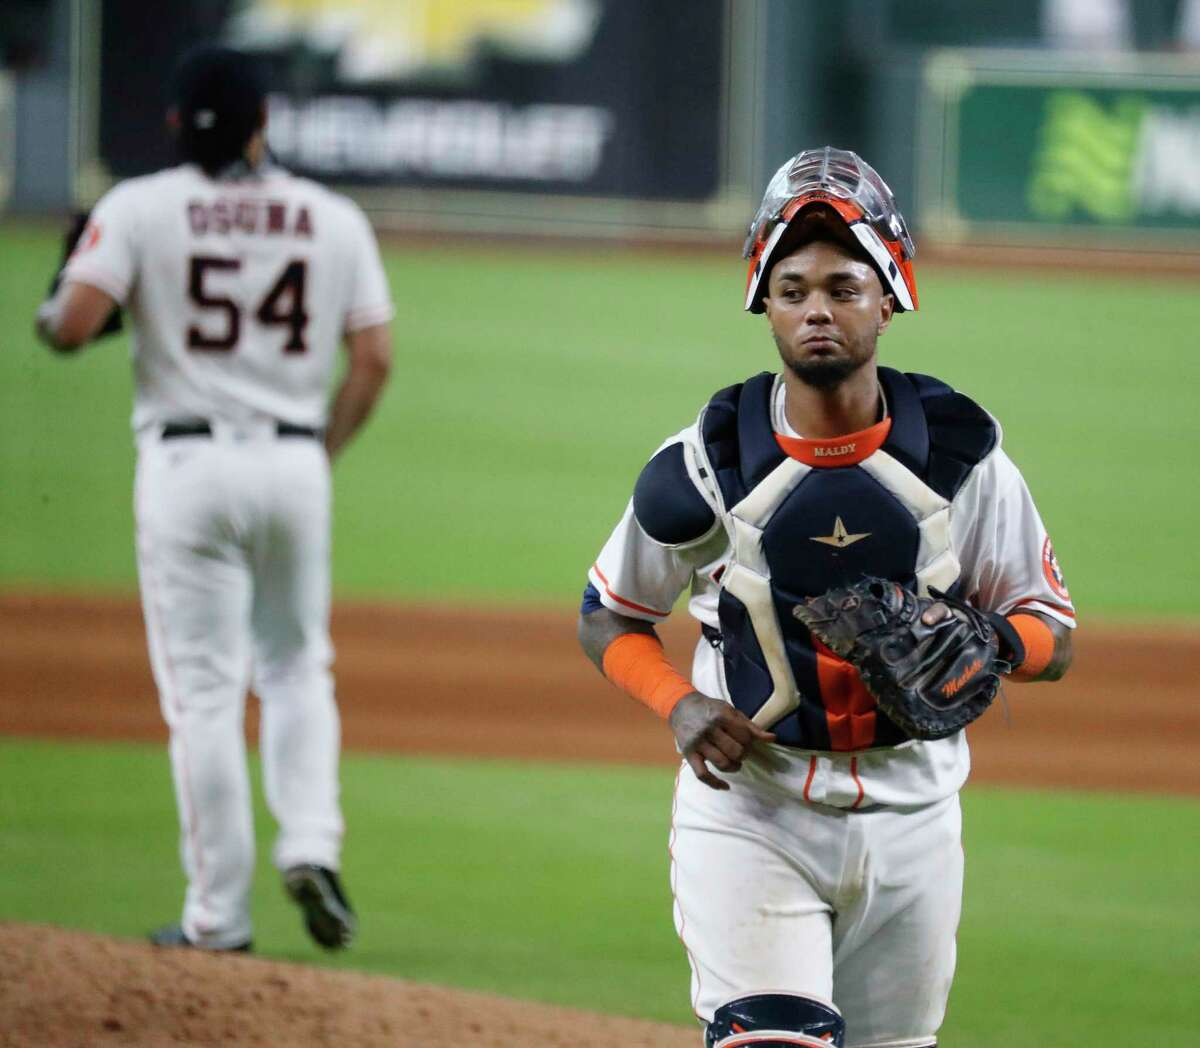 July 25: Astros 7, Mariners 2 Record: 2-0 Houston Chronicle's Player of the Game Martin Maldonado 2 for 4/ 2 RBI